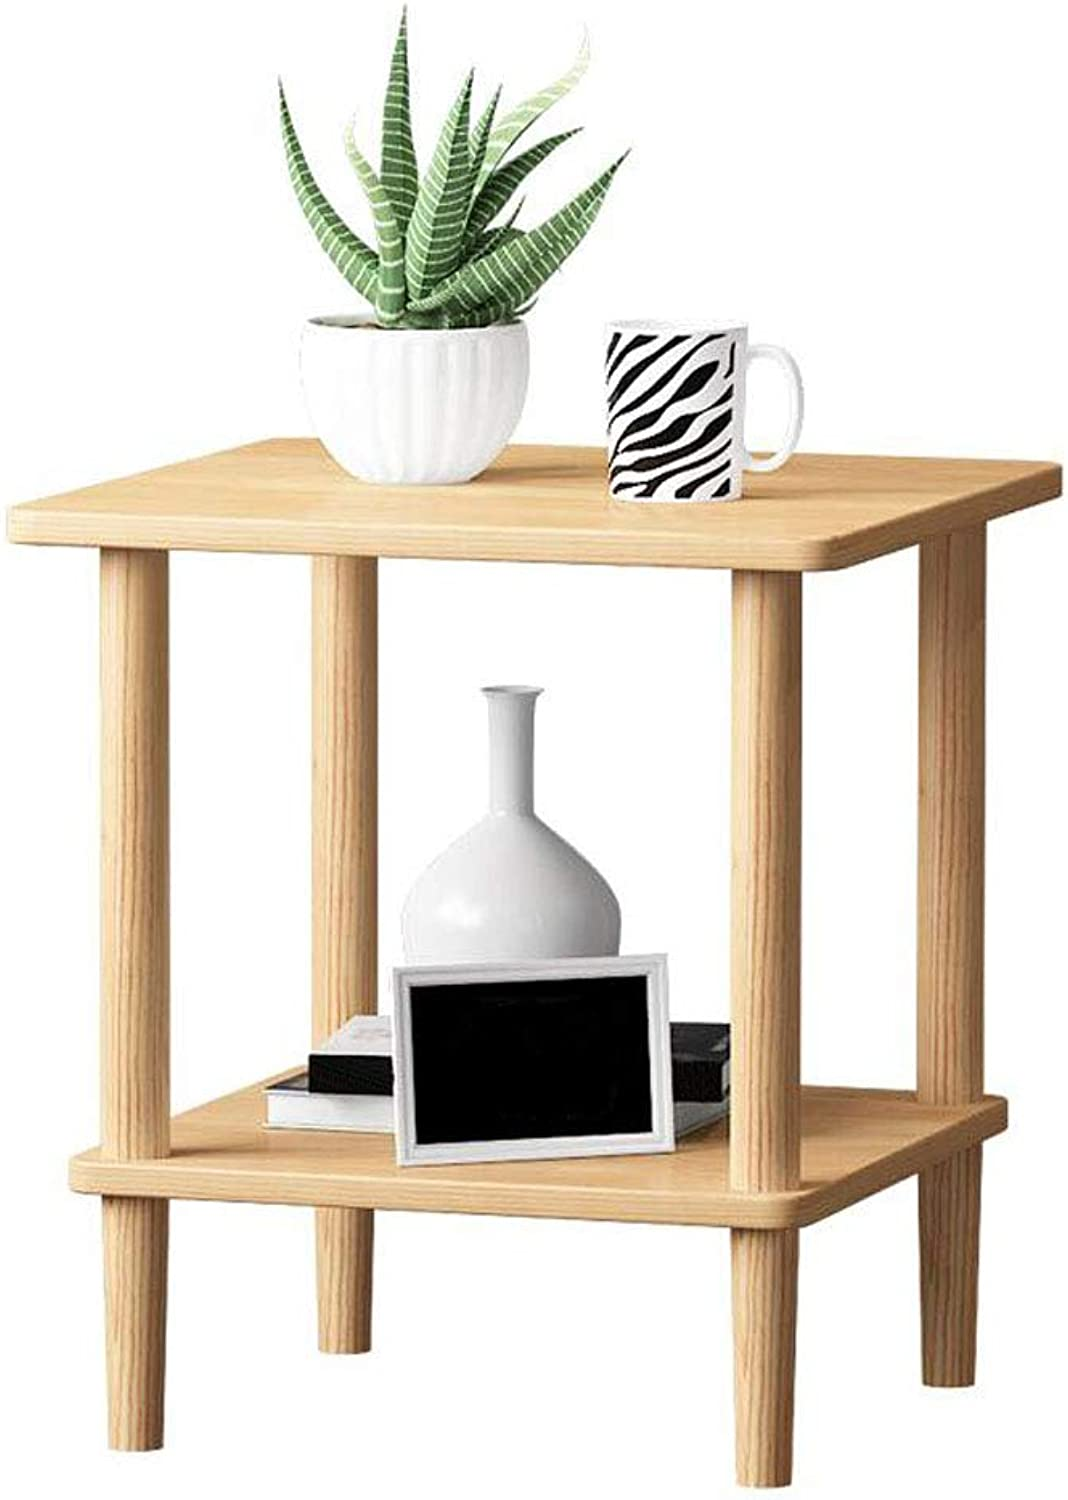 Solid Wood Bedside Table Simple Modern Coffee Table Small Apartment Living Room Storage Cabinet Side Cabinet (color   Wood color, Size   40  40  53cm)